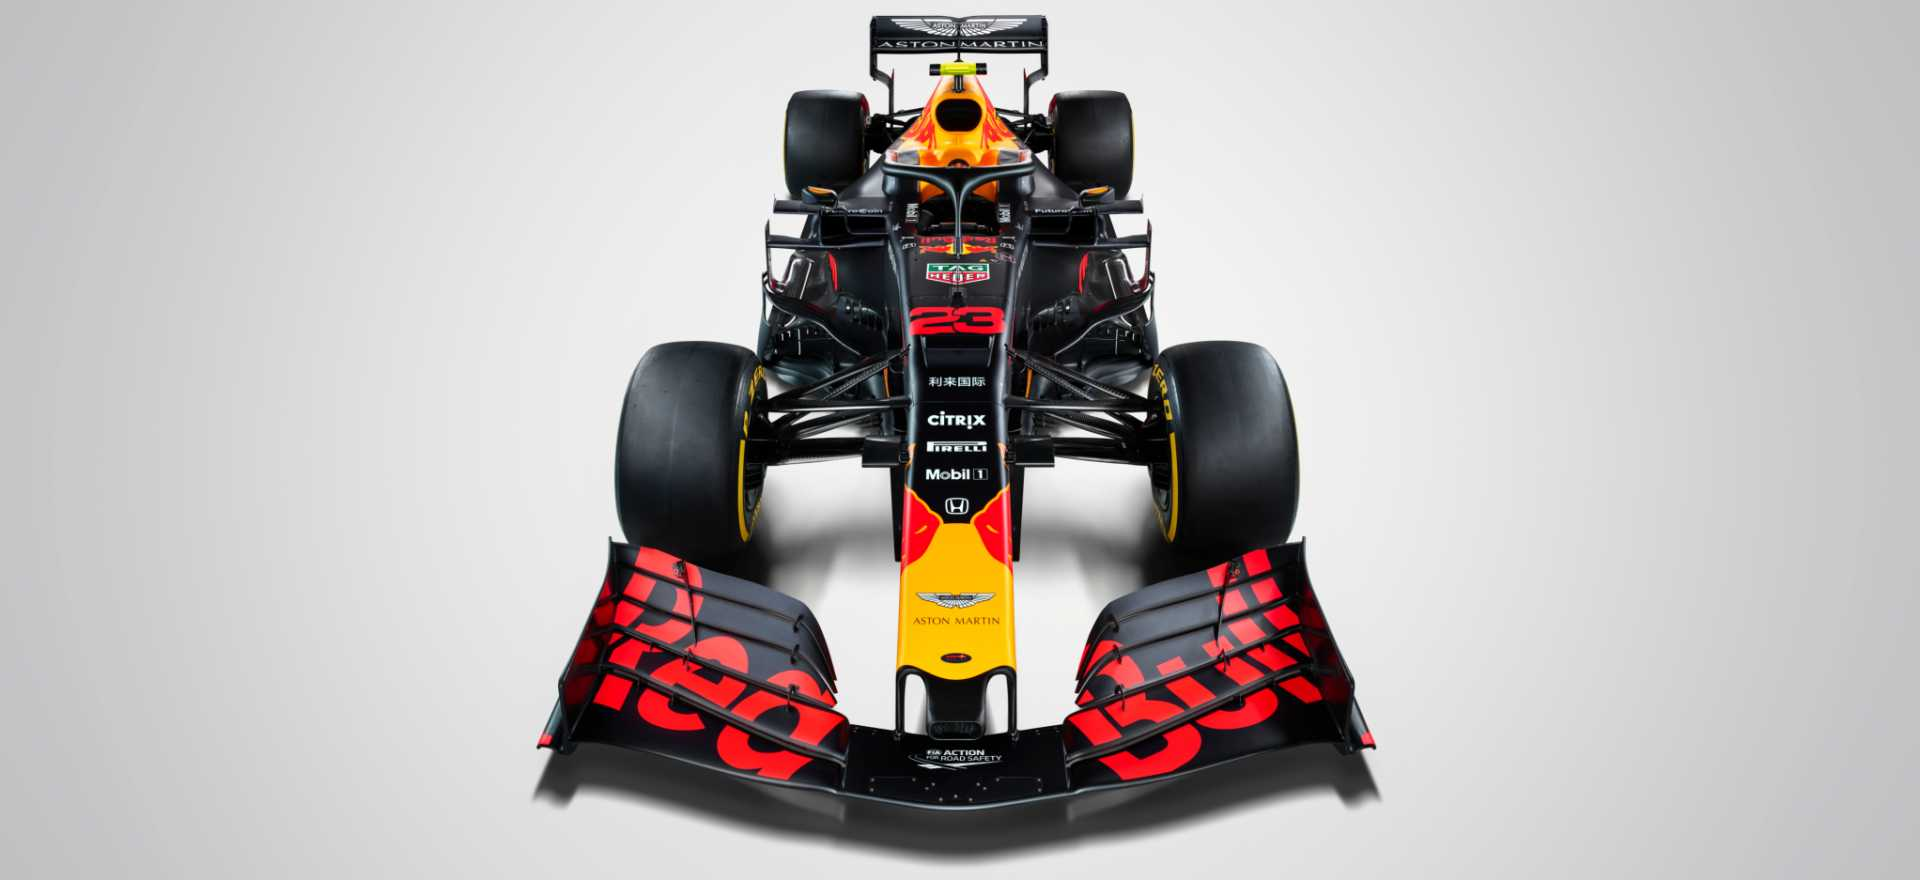 FULL WIDTH - Max Verstappen's #33 Aston Martin Red Bull Racing RB15 seen during a Studio Shoot, United Kingdom, February 2019 - image courtesy of Thomas Butler / Red Bull Content Pool